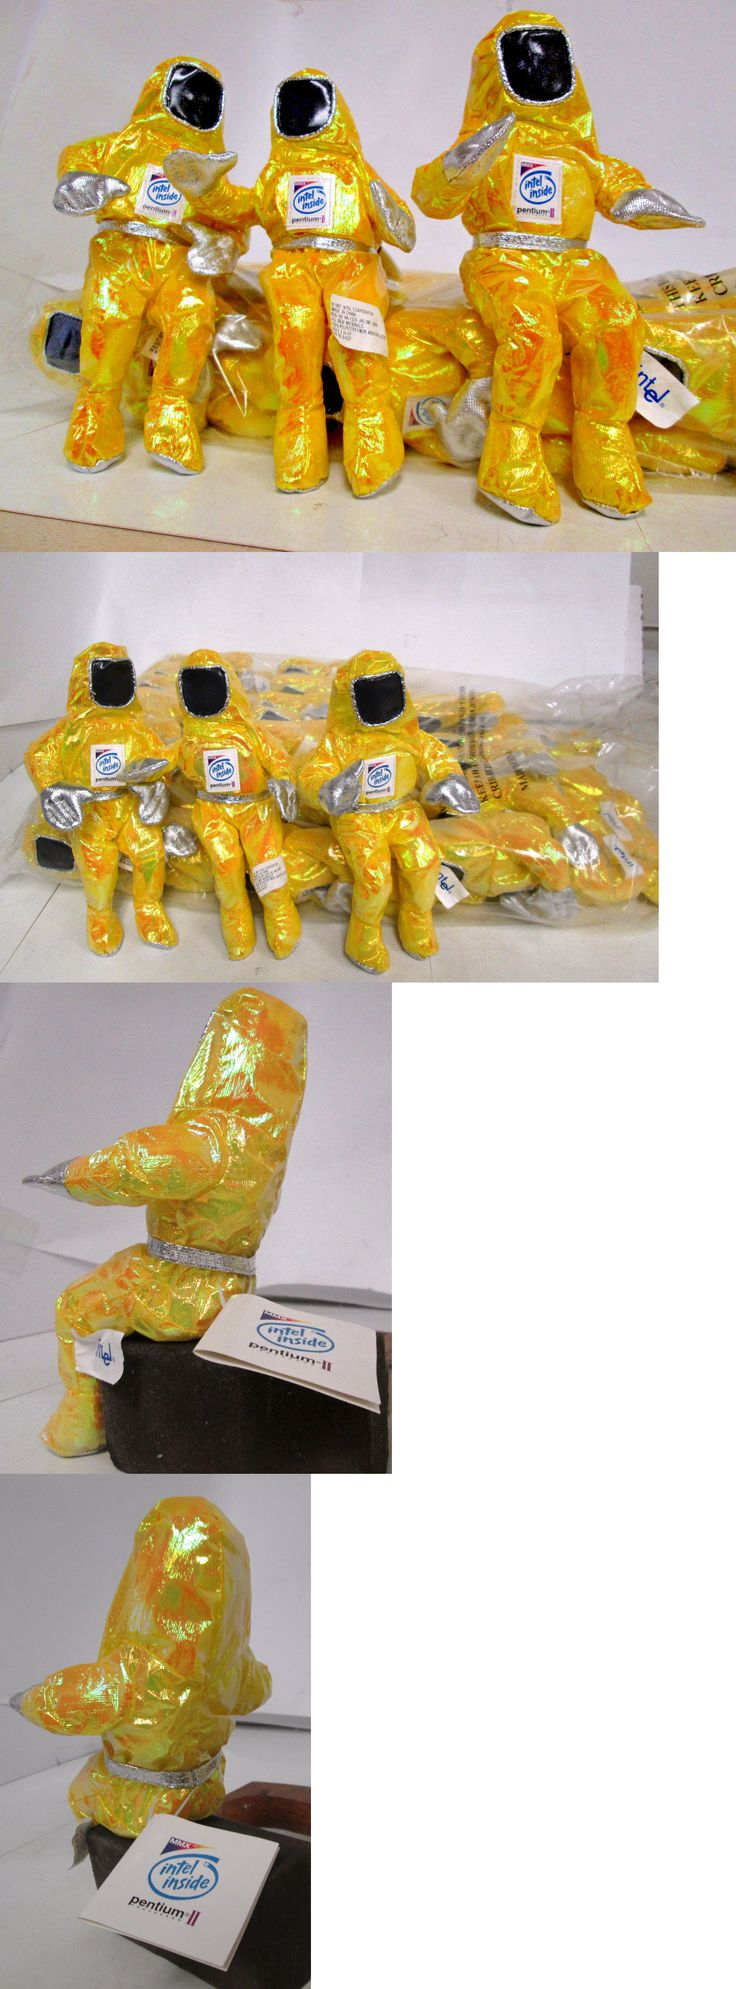 1970-Now 1187: (25) Intel Pentium Ii Bunny People Astronaut Space Like Figurines Toys -> BUY IT NOW ONLY: $69.99 on eBay!